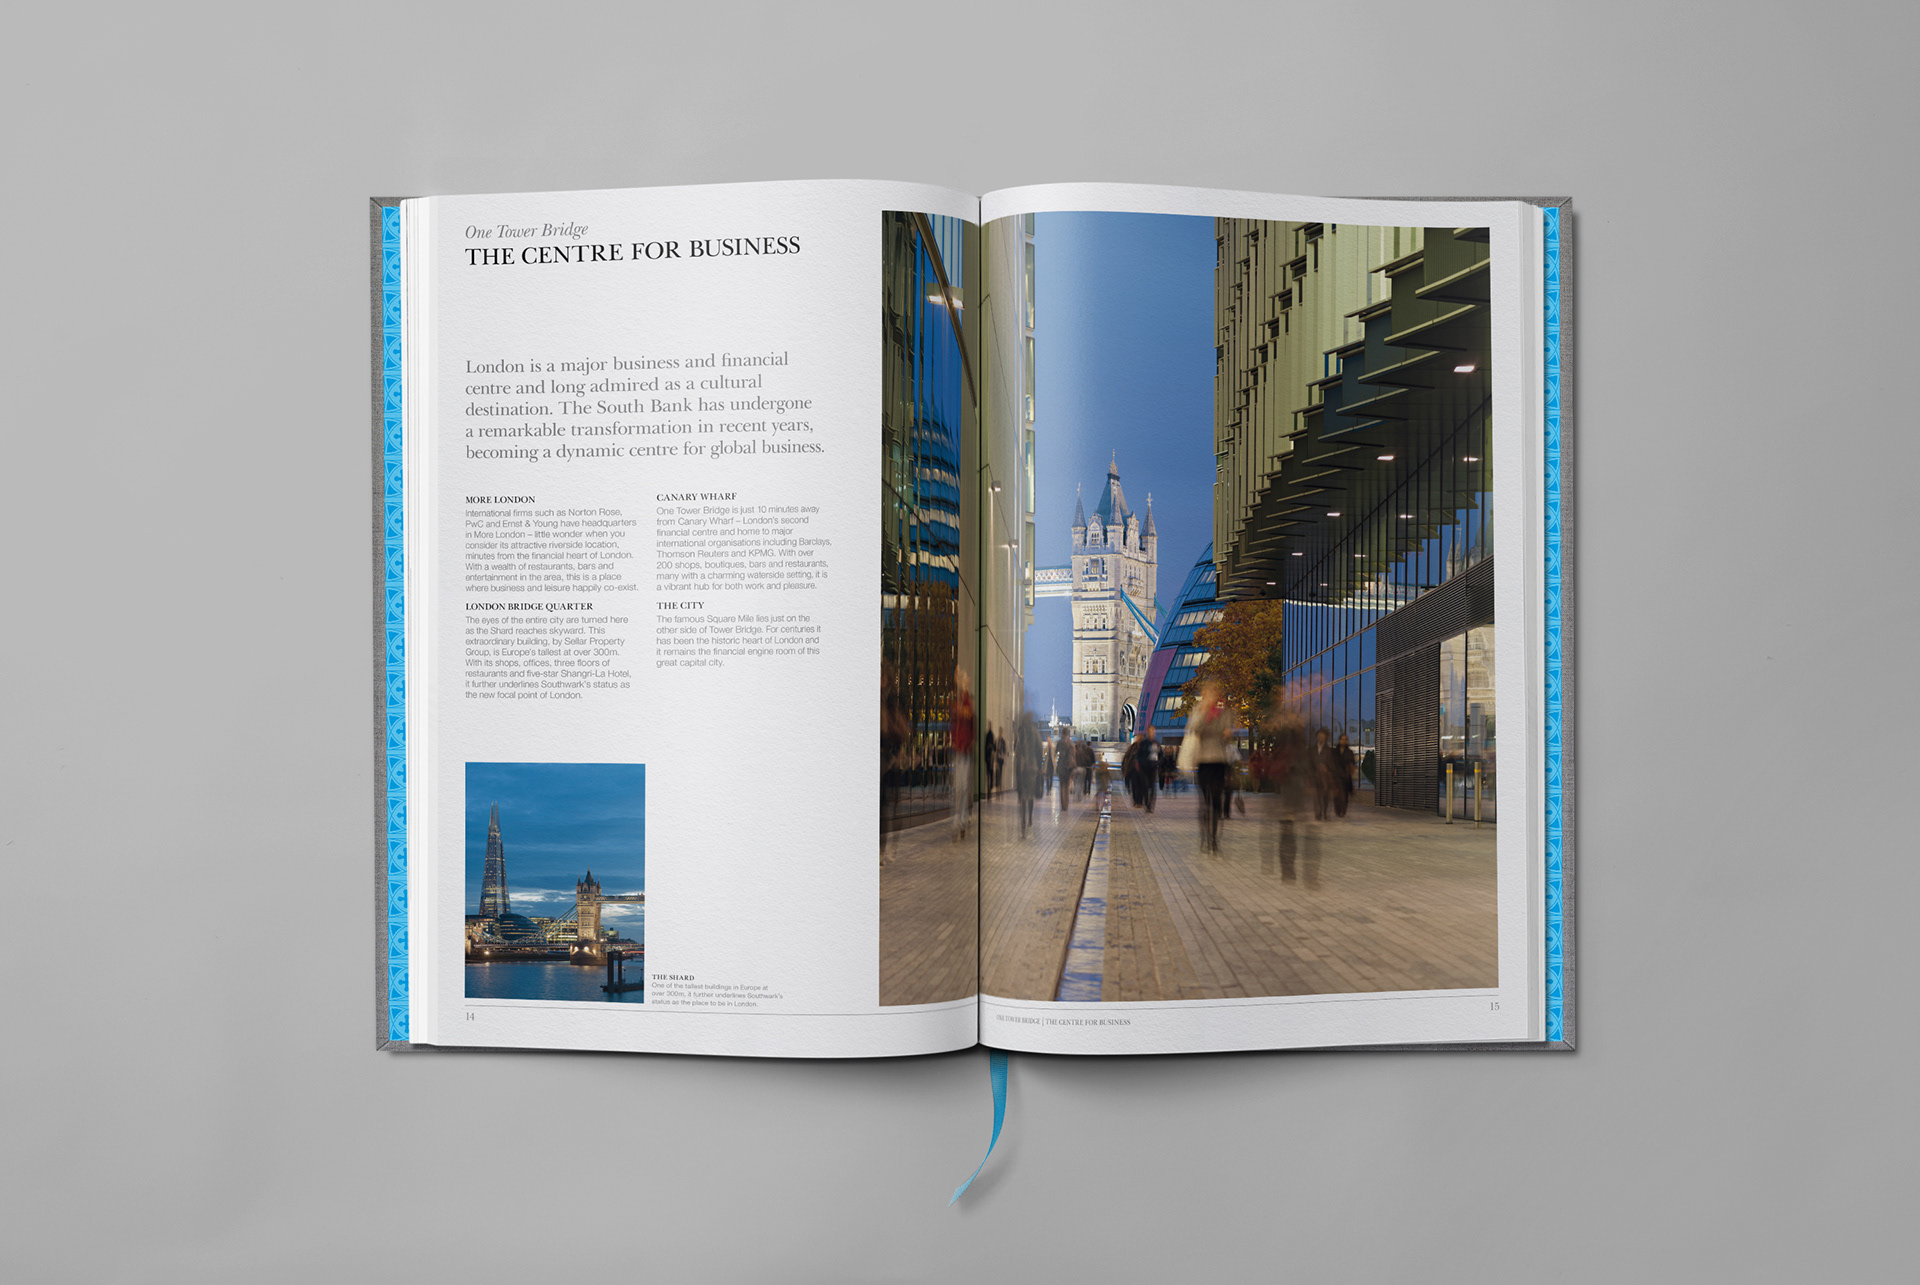 Andy Mosley - One Tower Bridge Property Brochure